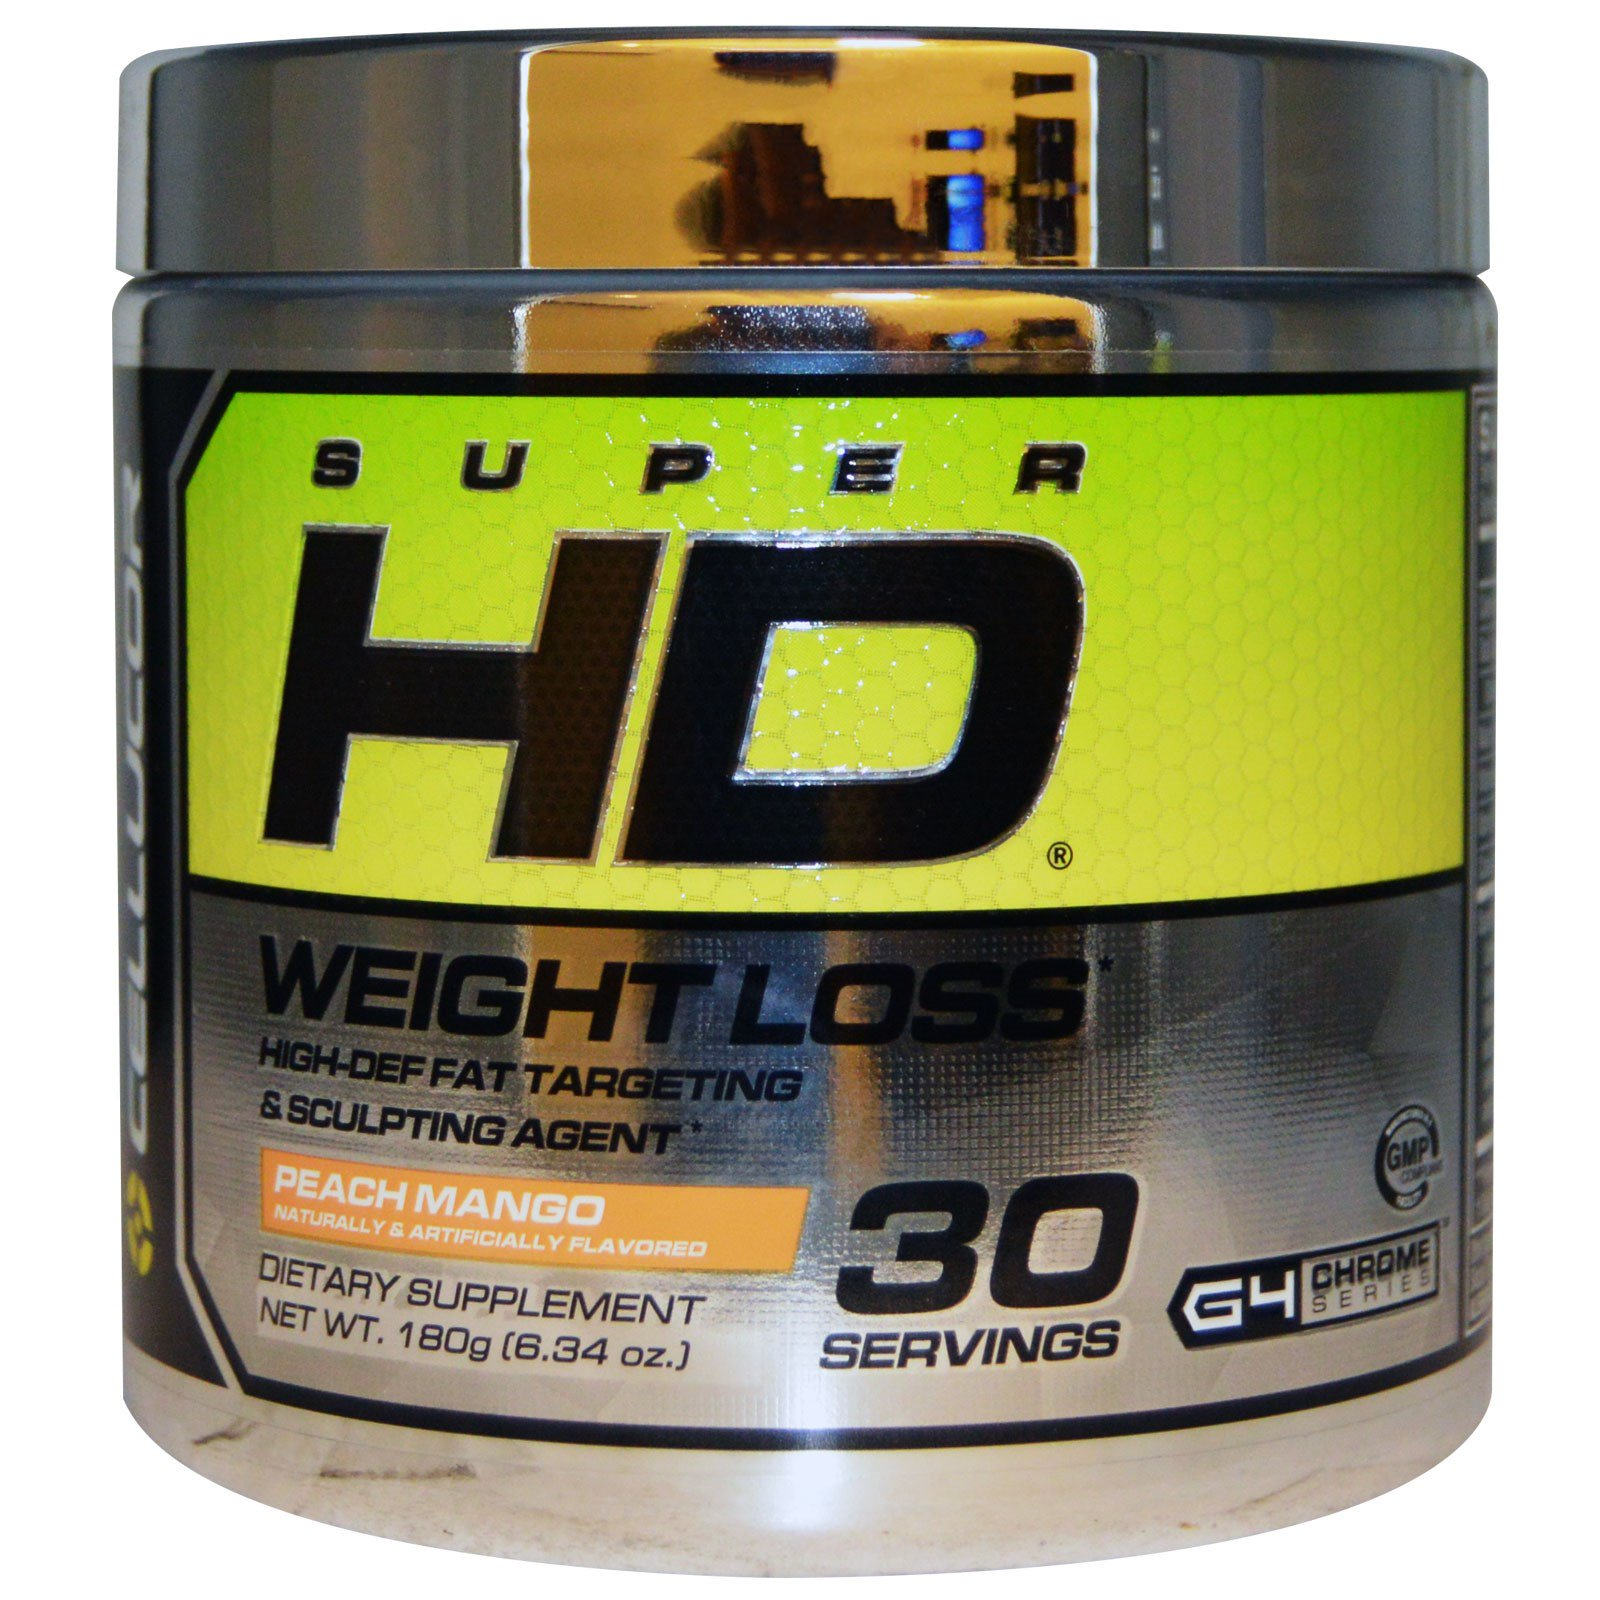 Cellucor super hd weight loss supplements